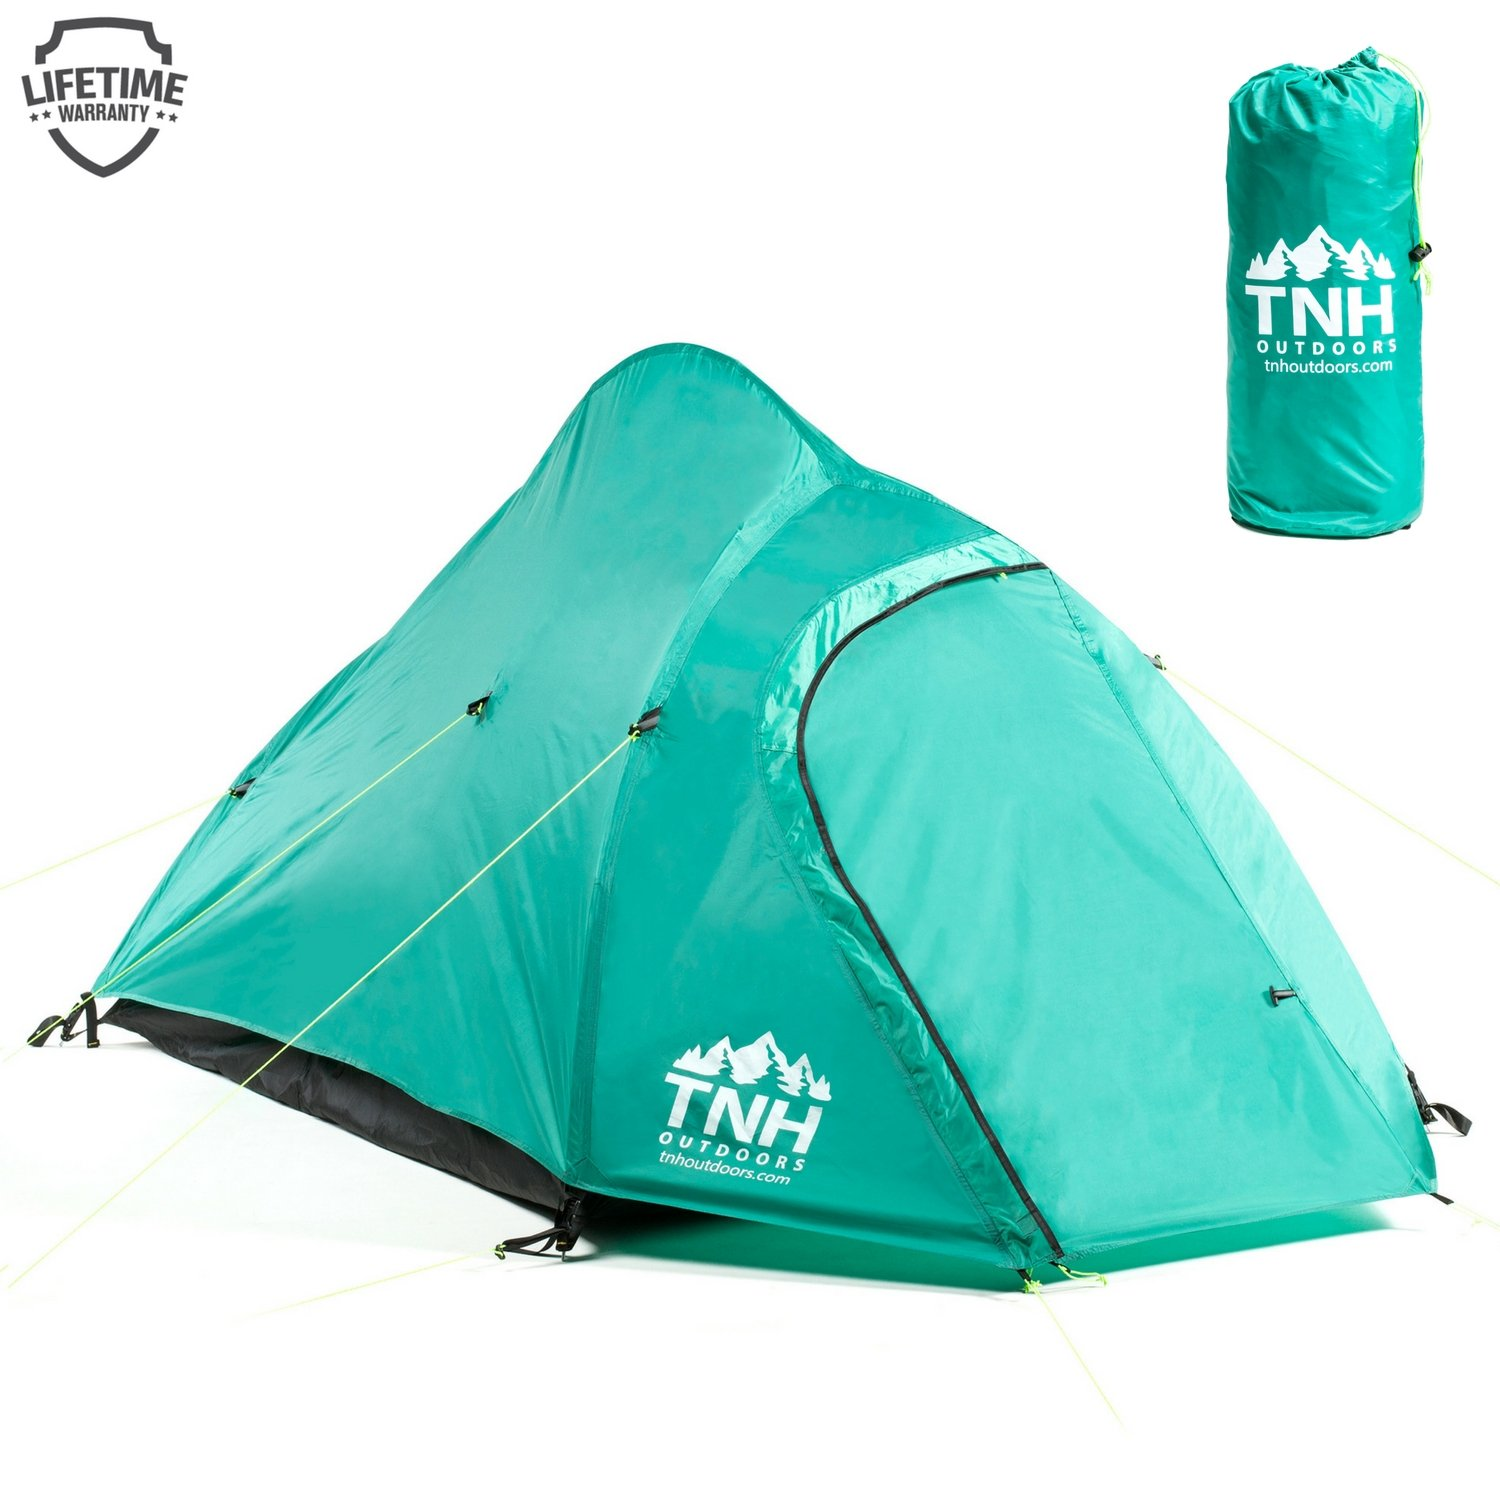 Portable Lightweight Easy Setup Hiking Tent TNH Outdoors 2 Person Camping /& Backpacking Tent with Carry Bag and Stakes